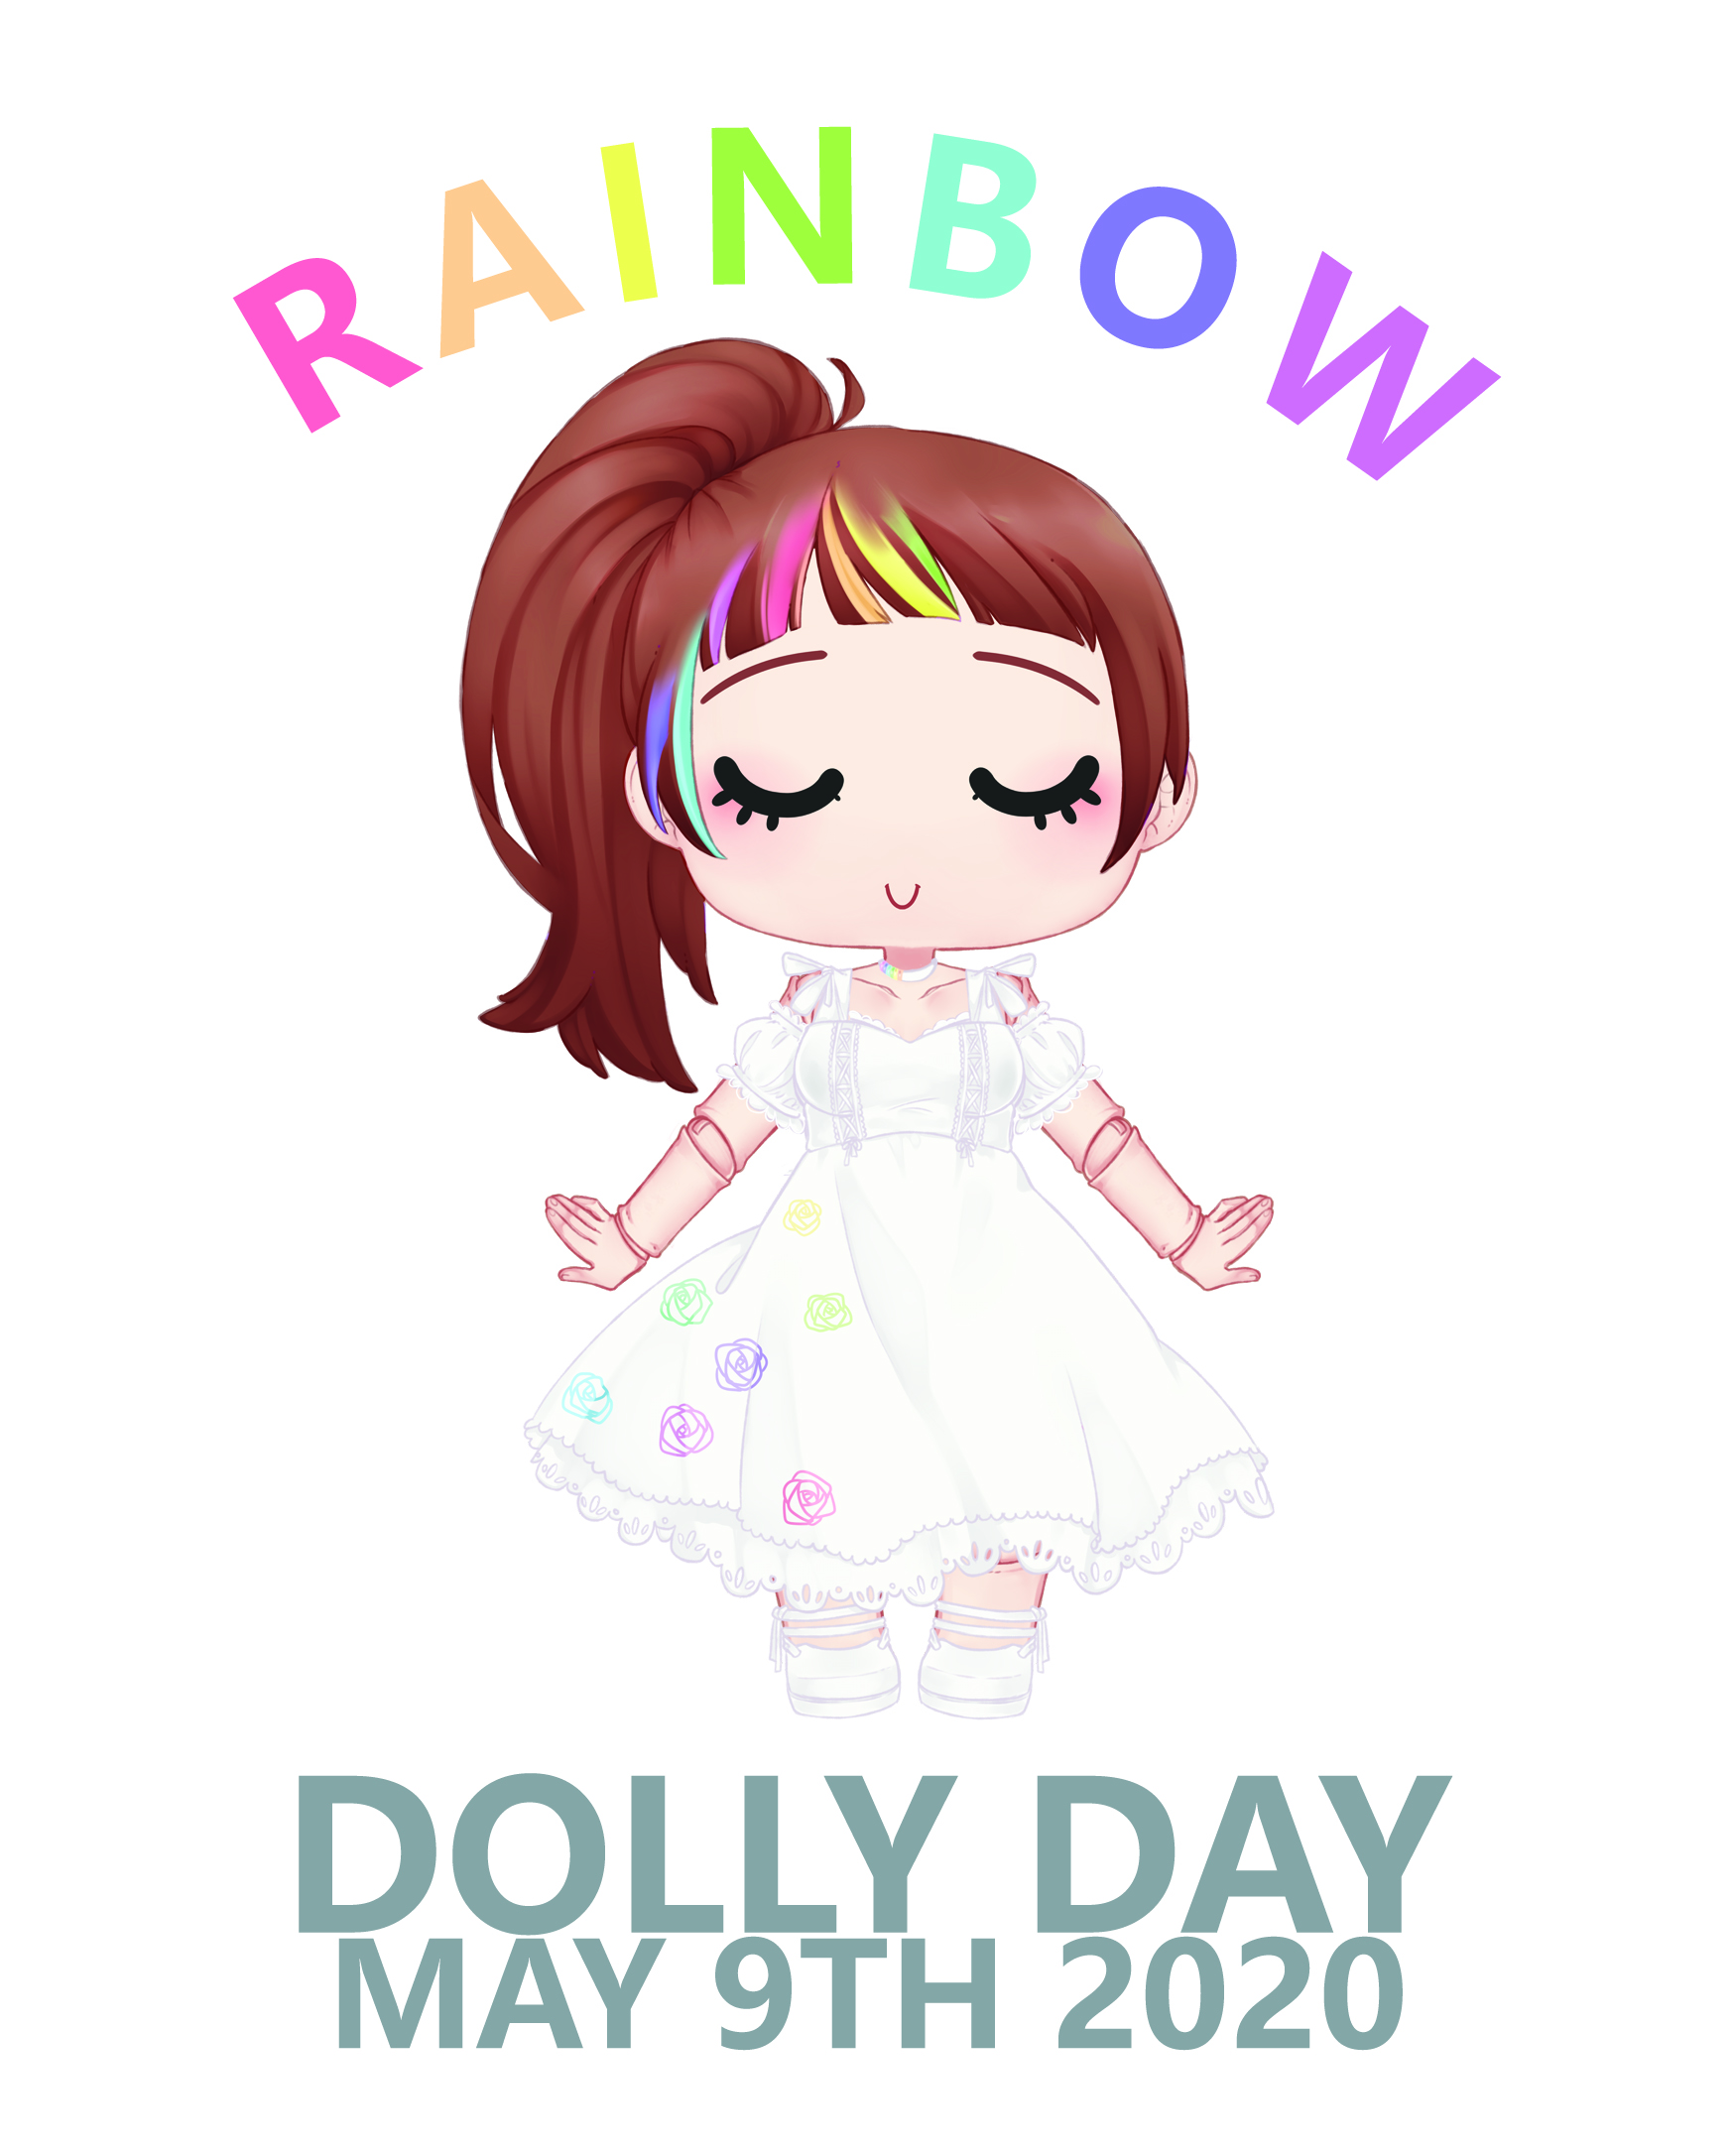 Dolly Day 2020 -  CHANGE DATE: 20-03-2021 RAINBOW